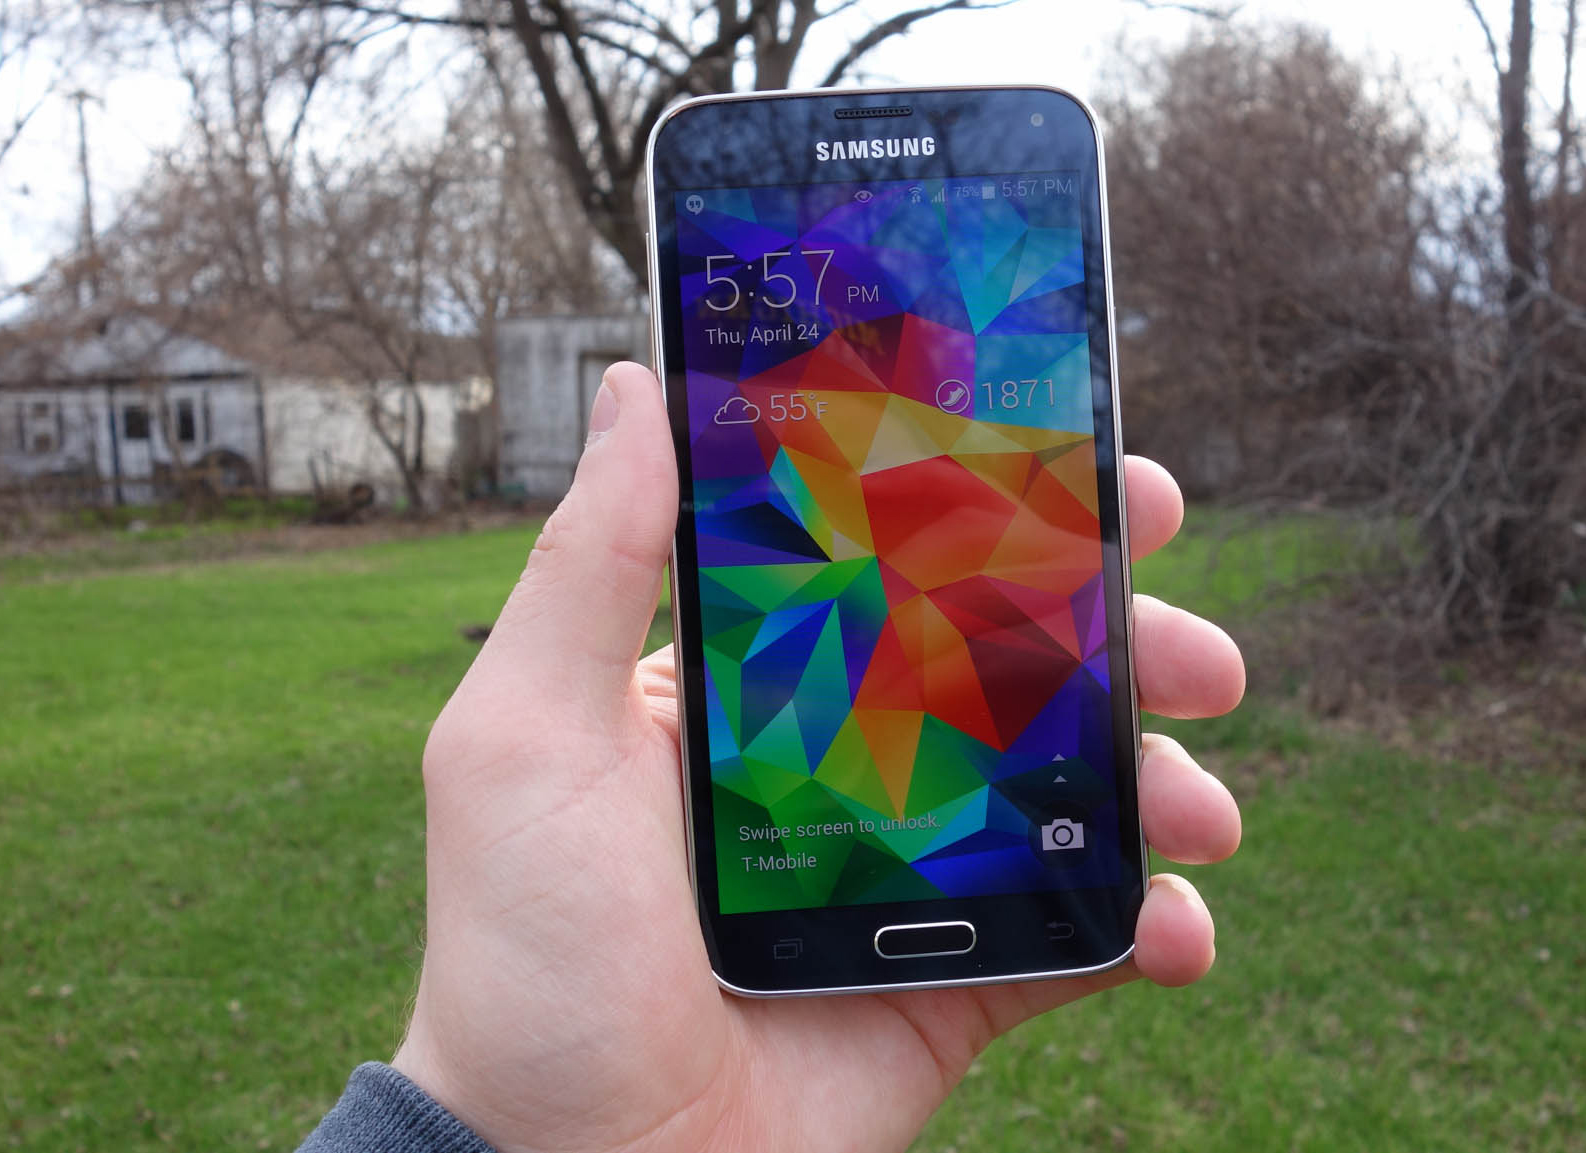 Samsung-Galaxy-S5-amoled